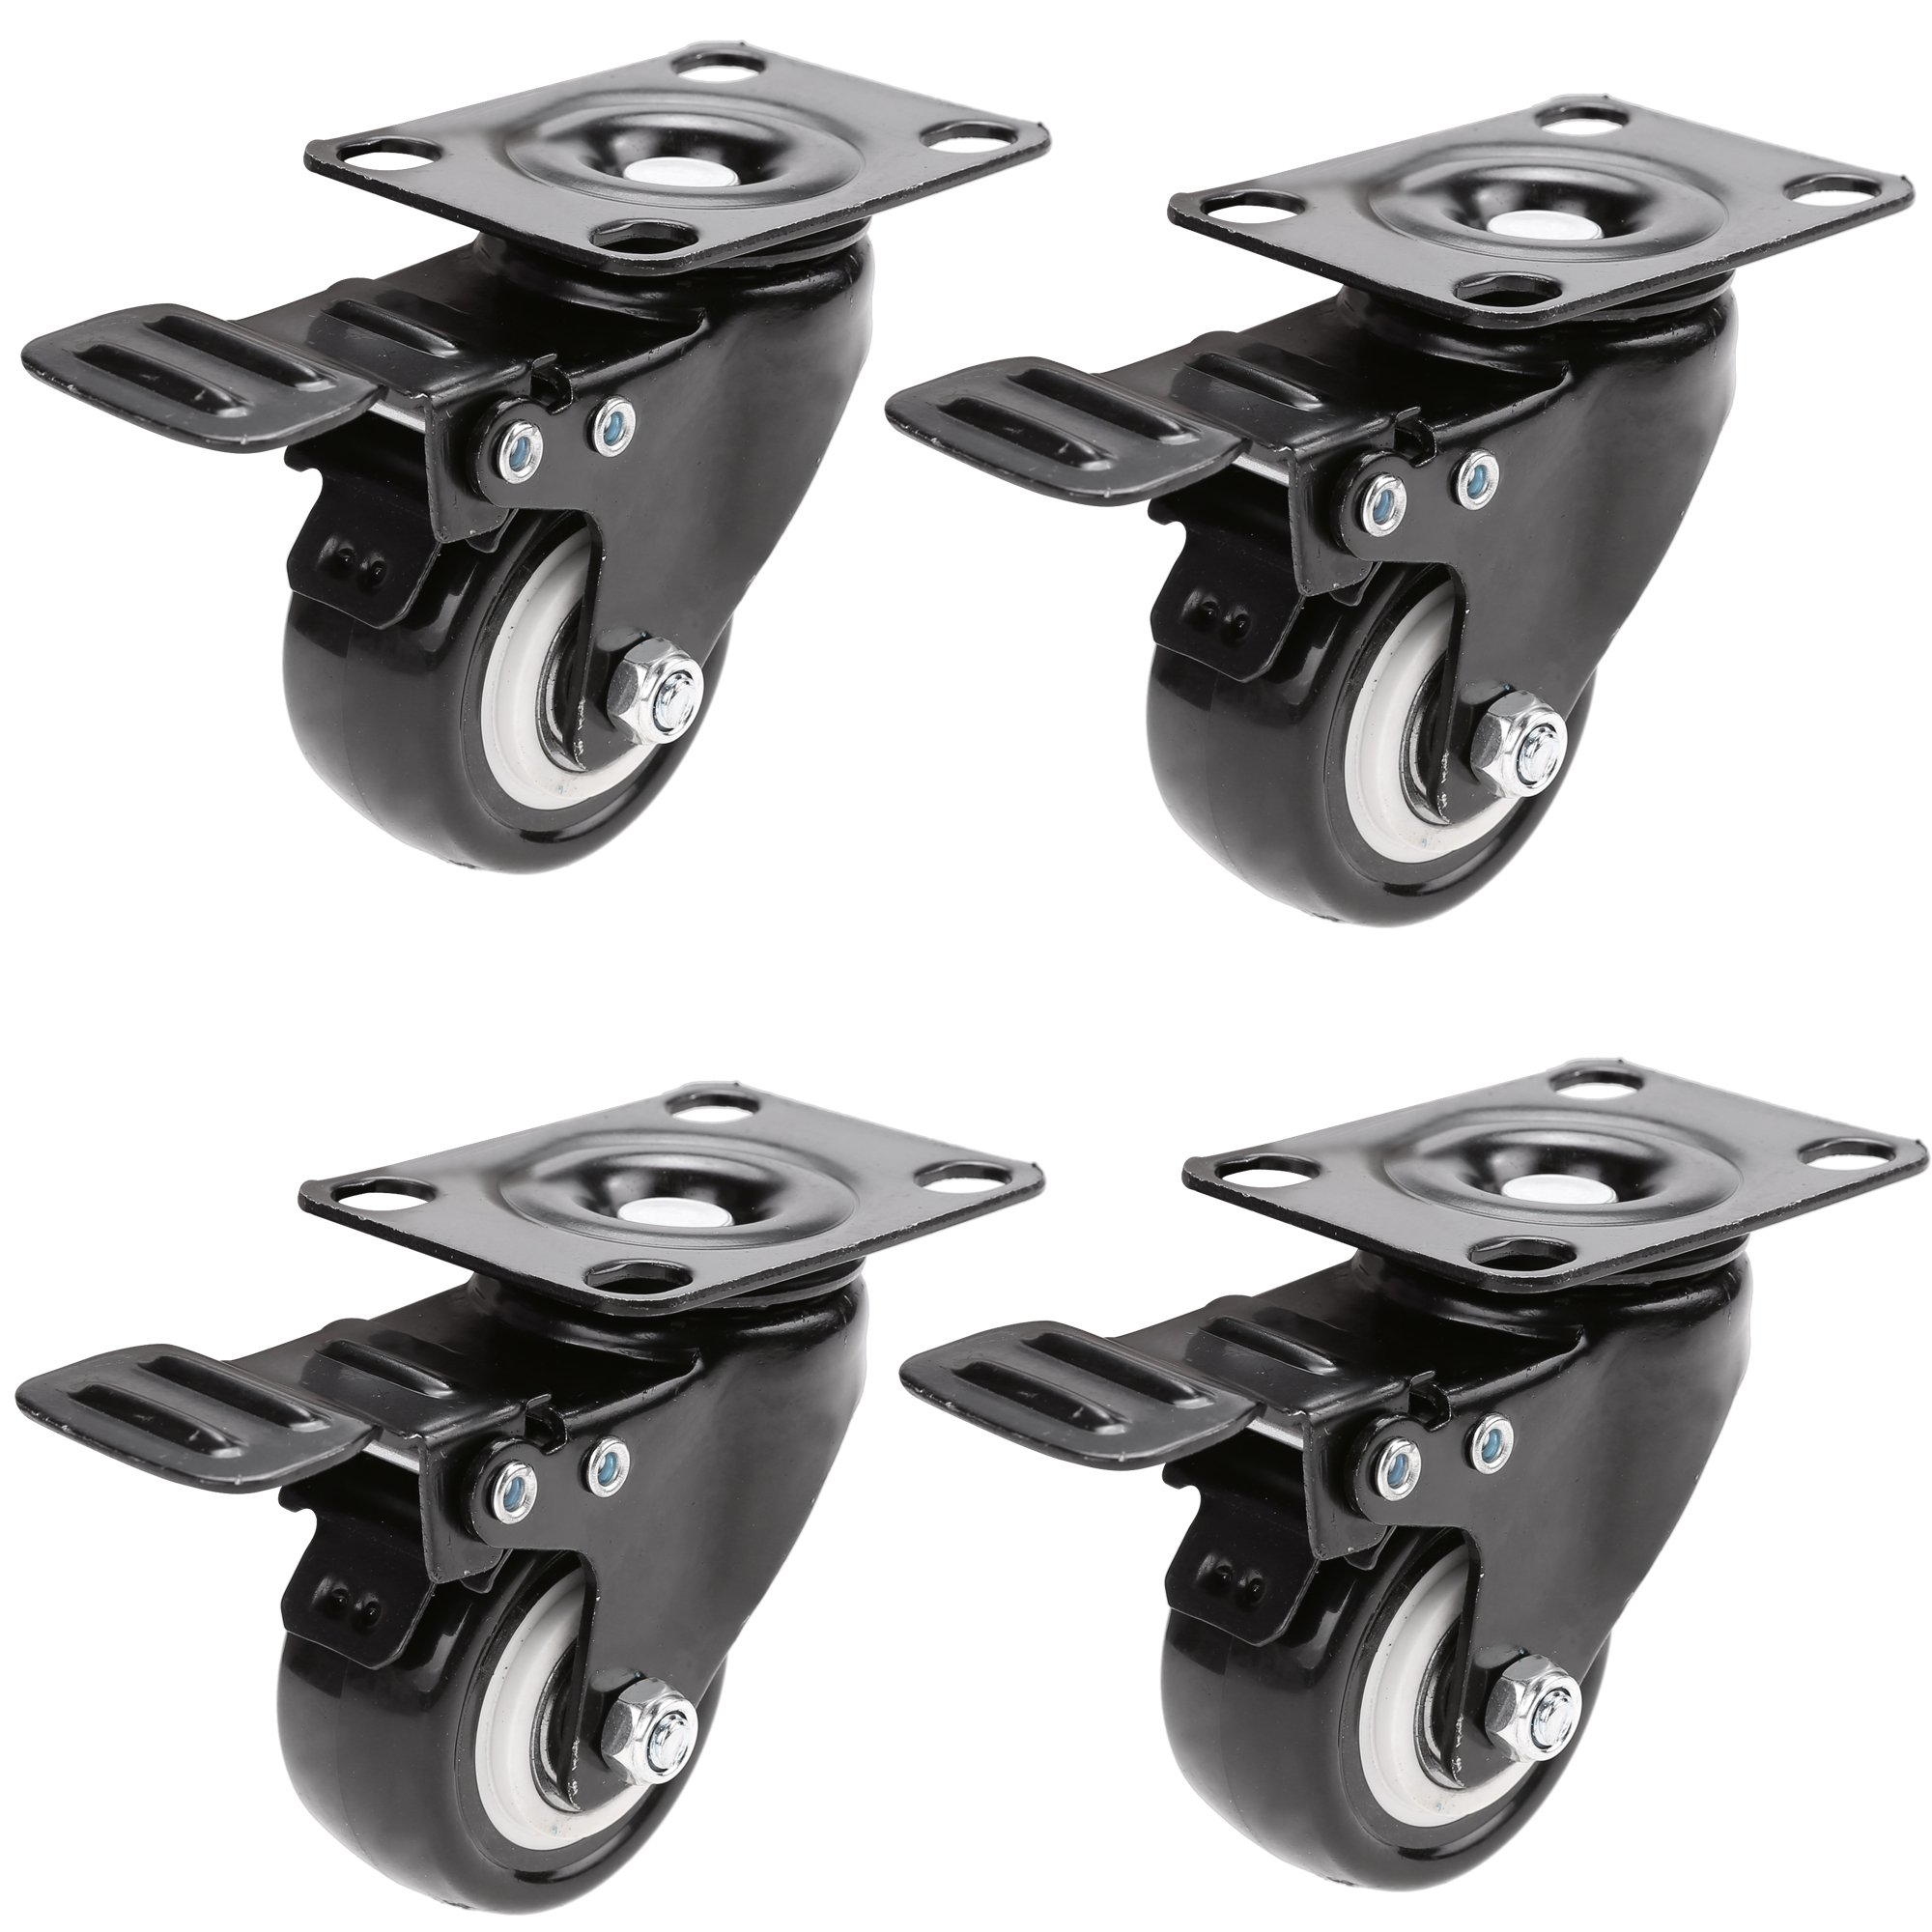 4 Pack 2'' Swivel Caster Wheels Heavy Duty Beach Chair Swivel Caster, Locking Swivel Wheel Rubber For Carts, Furniture, Dolly, Workbench, Trolley, Steel Top Plate Ball Bearings Black